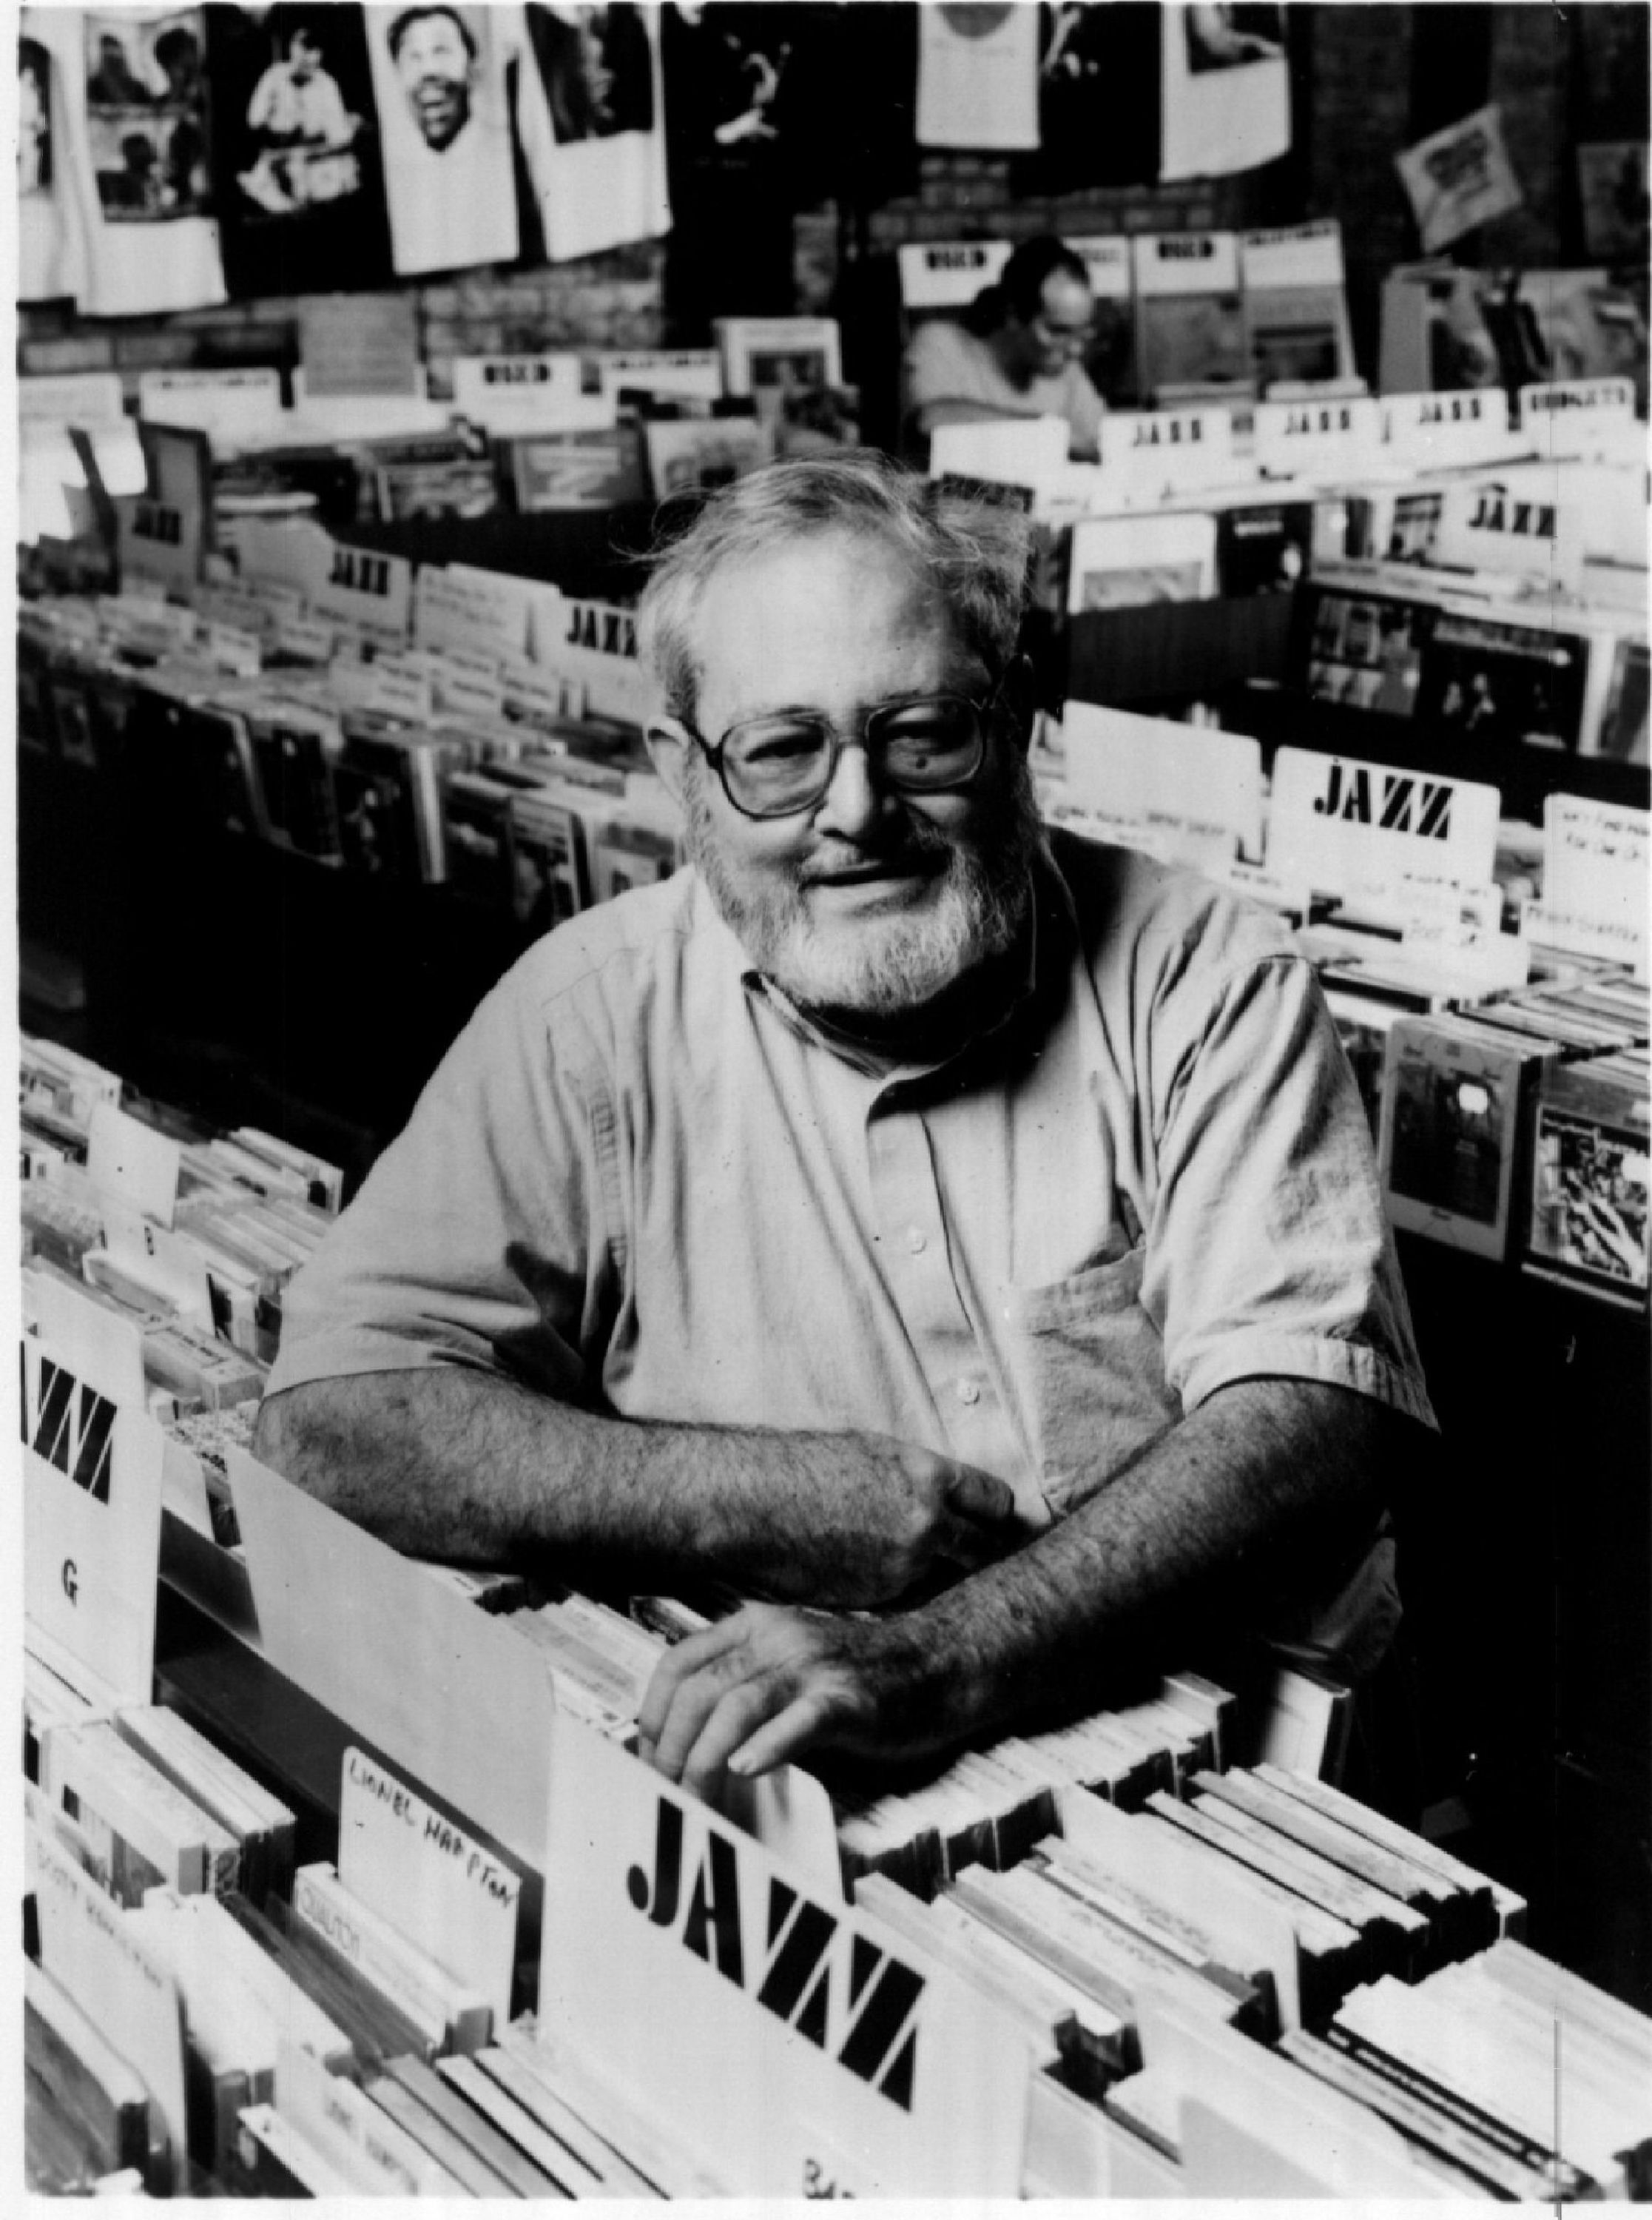 Bob Koester was one of the first to capture and preserve the sounds of Chicago's South Side and West Side blues clubs, says Bruce Iglauer, who once worked for him as a shipping clerk and went on to found Alligator Records.